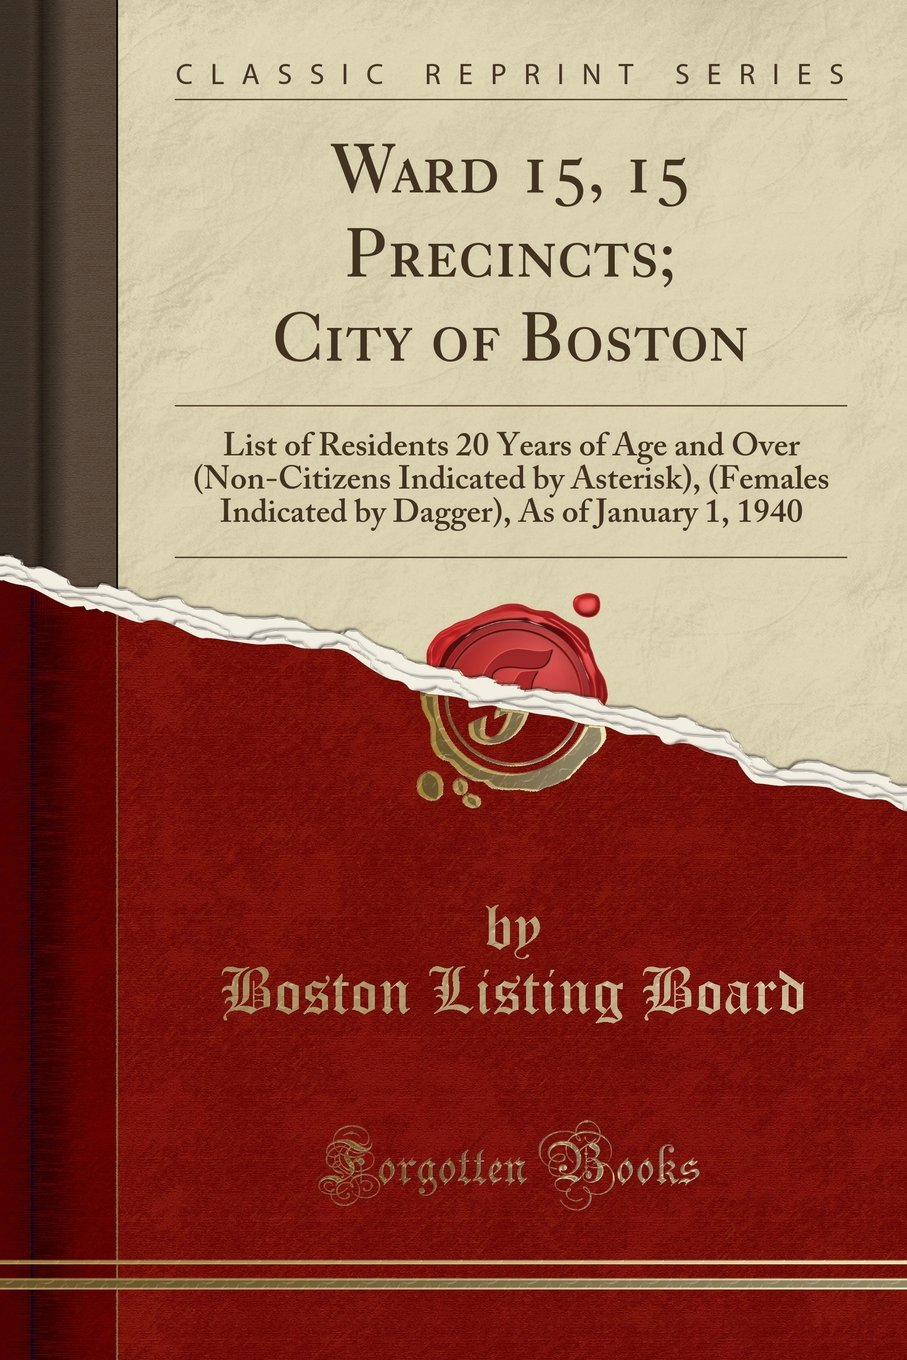 Download Ward 15, 15 Precincts; City of Boston: List of Residents 20 Years of Age and Over (Non-Citizens Indicated by Asterisk), (Females Indicated by Dagger), As of January 1, 1940 (Classic Reprint) ebook